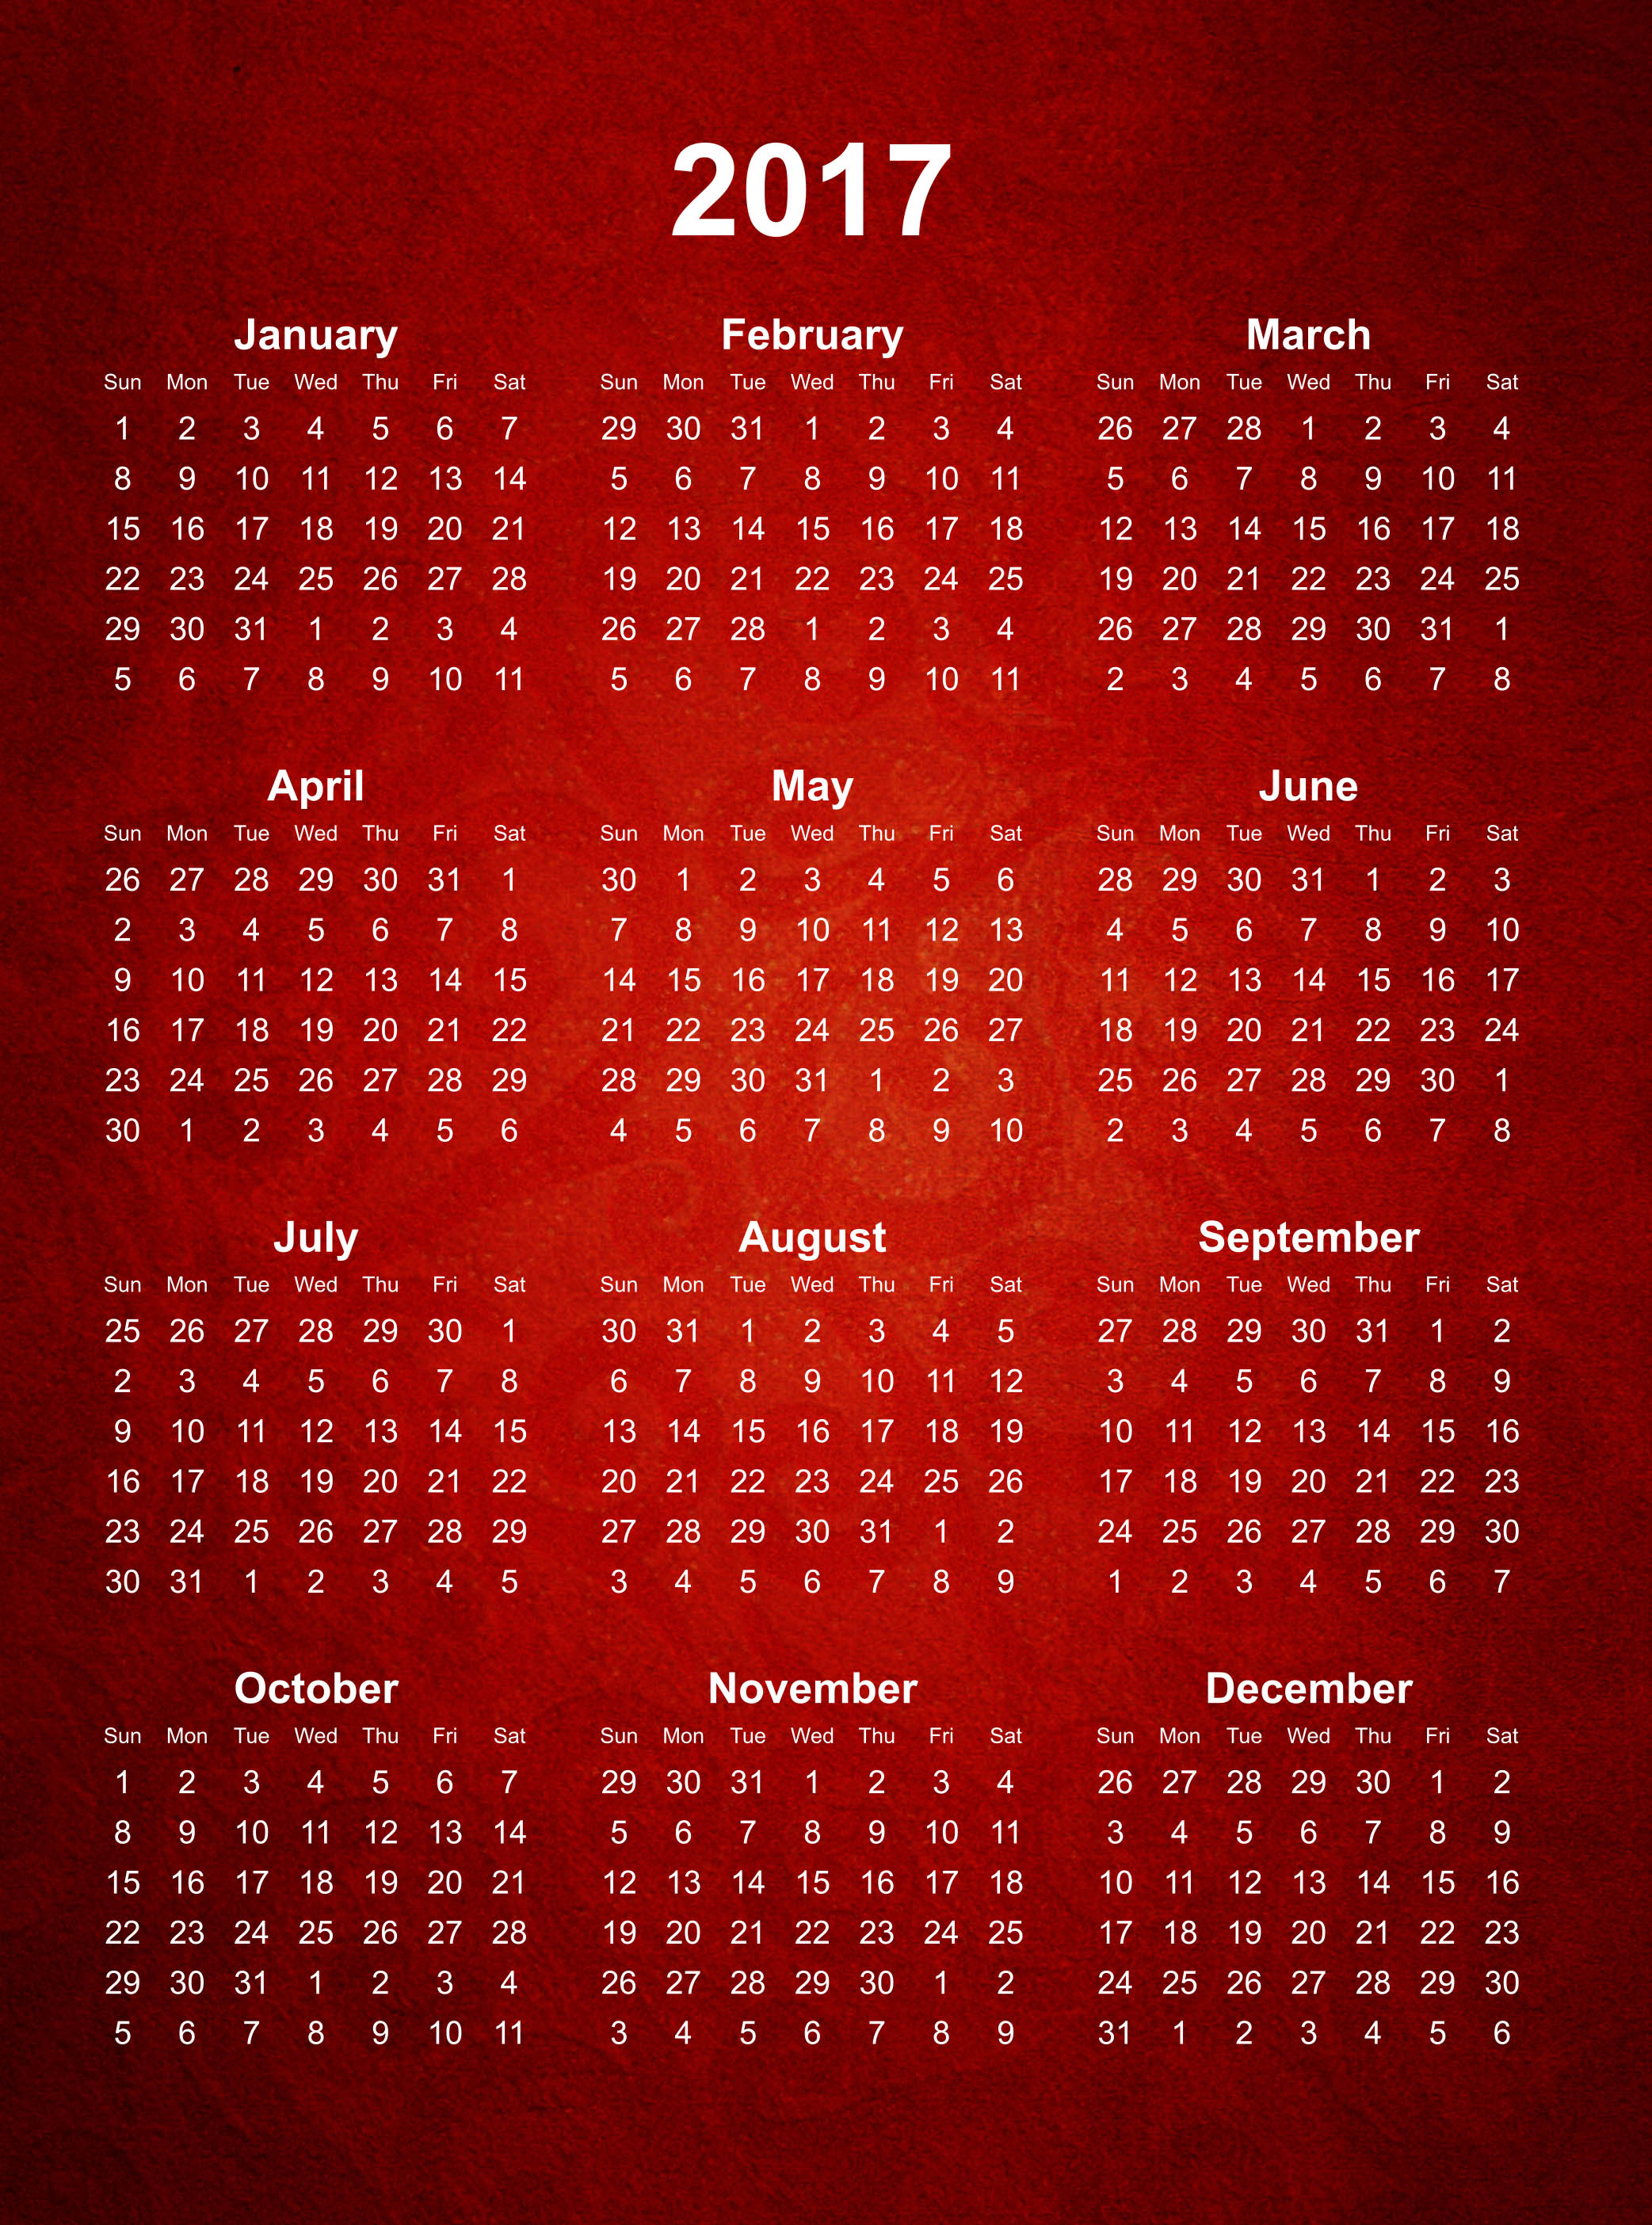 Calendar Wallpaper 2017 : Calendar wallpapers high quality download free